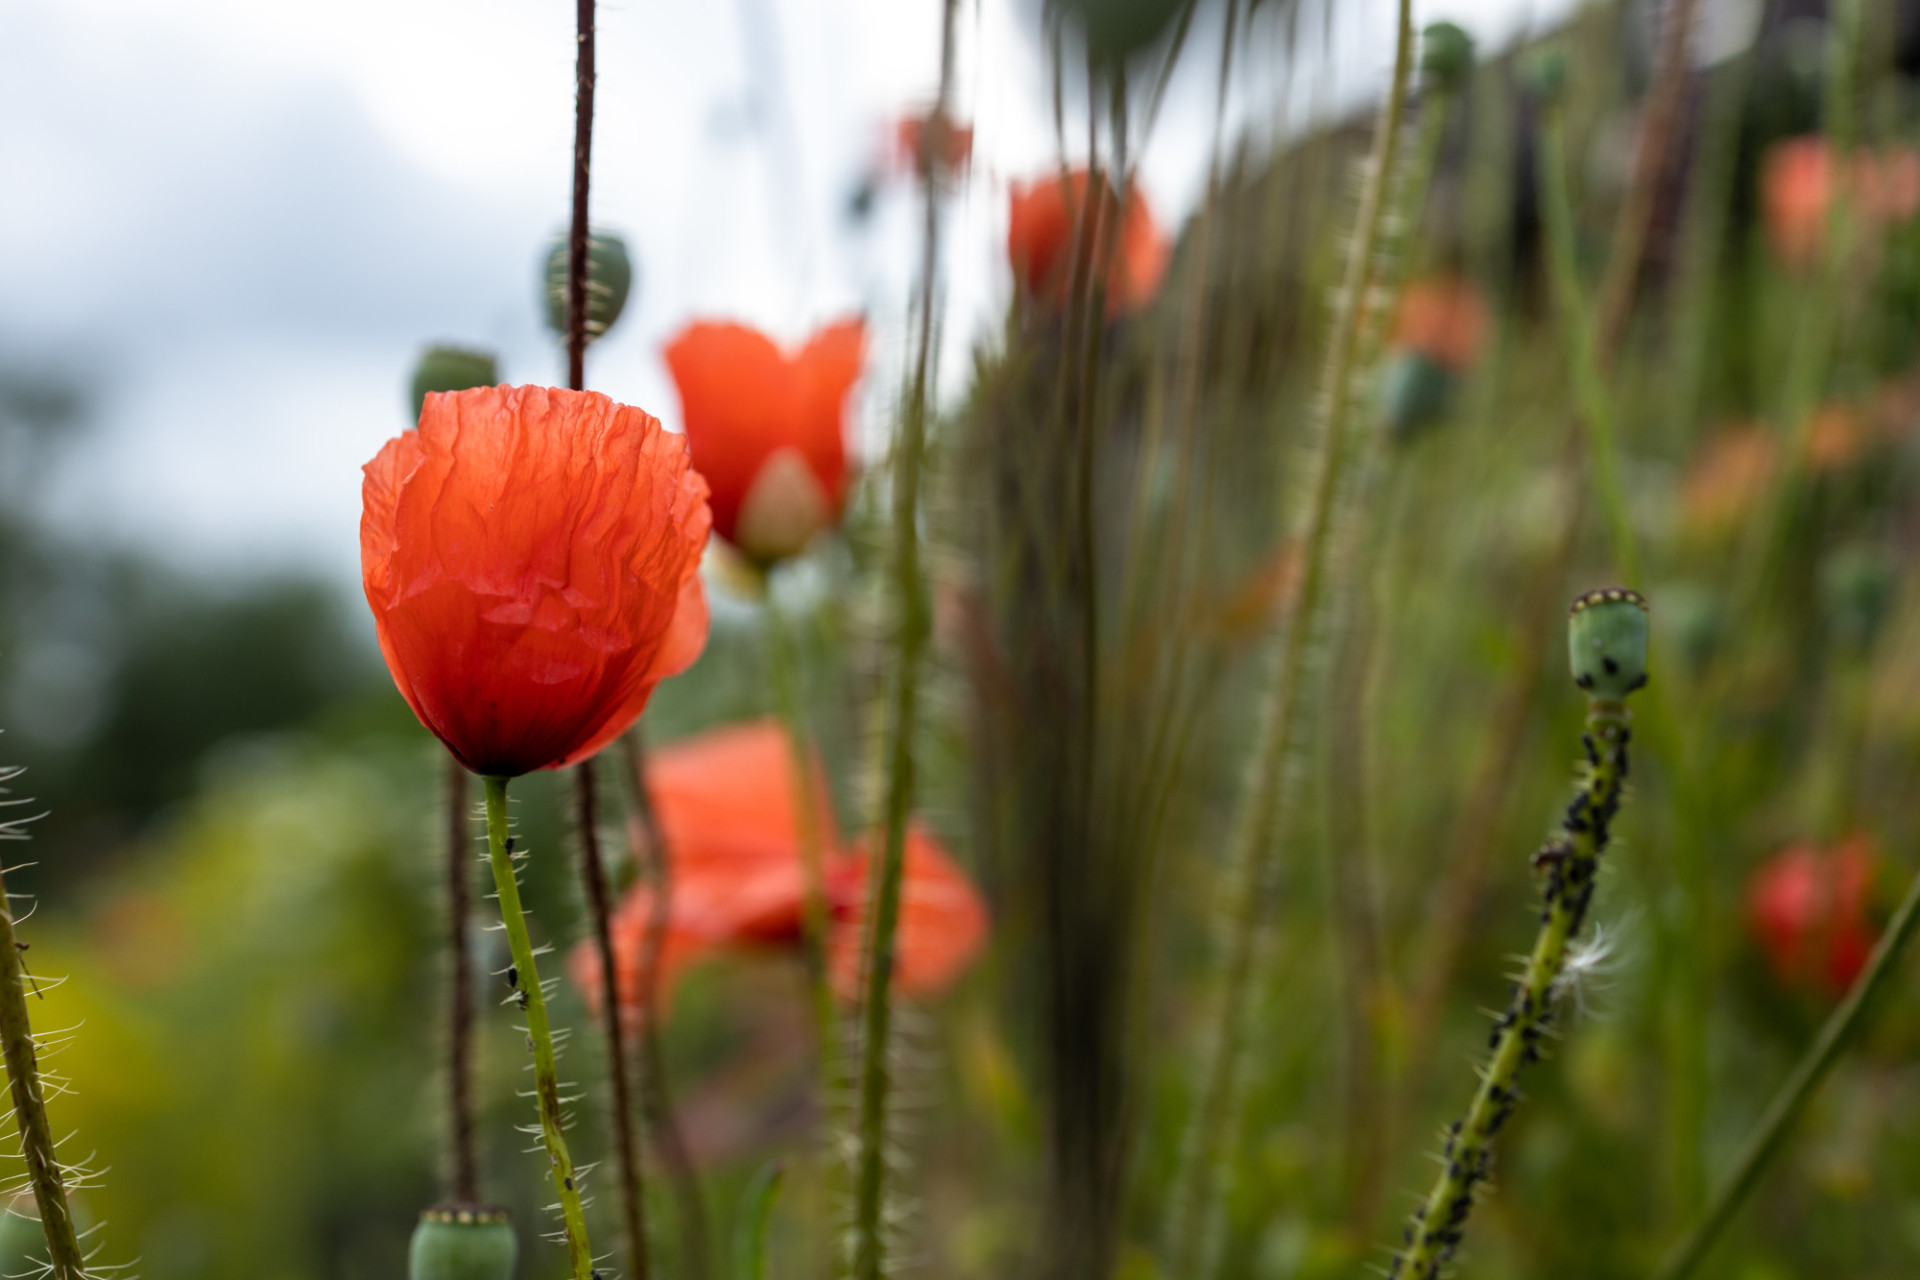 Poppy with aphid infestation